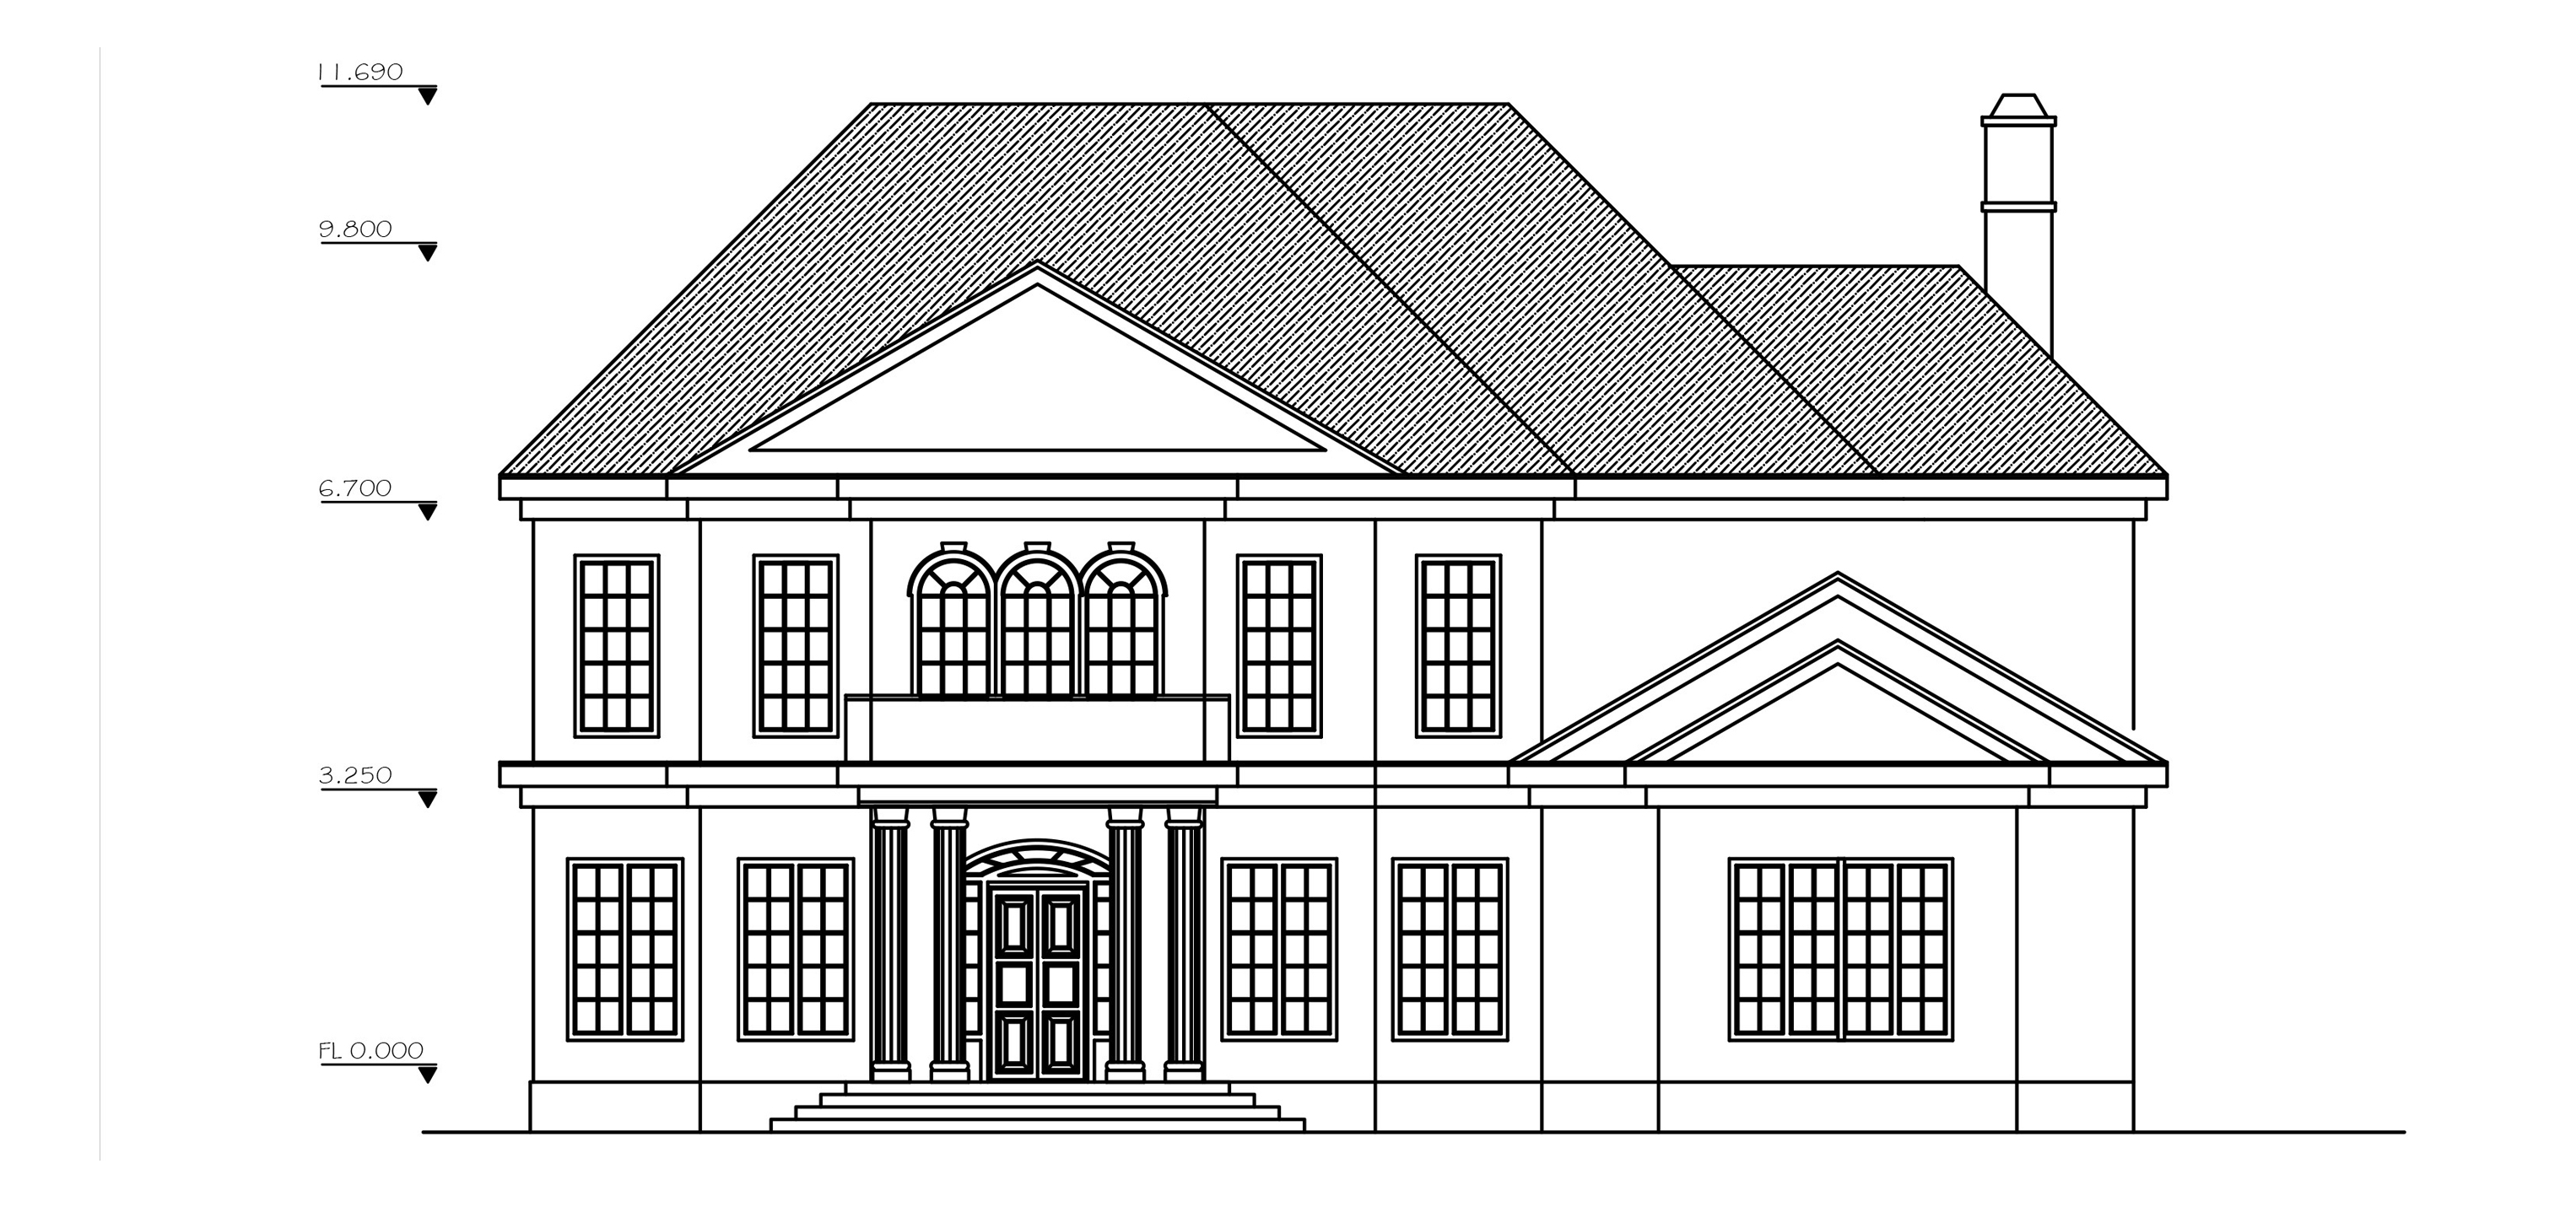 Front Elevation Autocad : Double story archives dwg net cad blocks and house plans